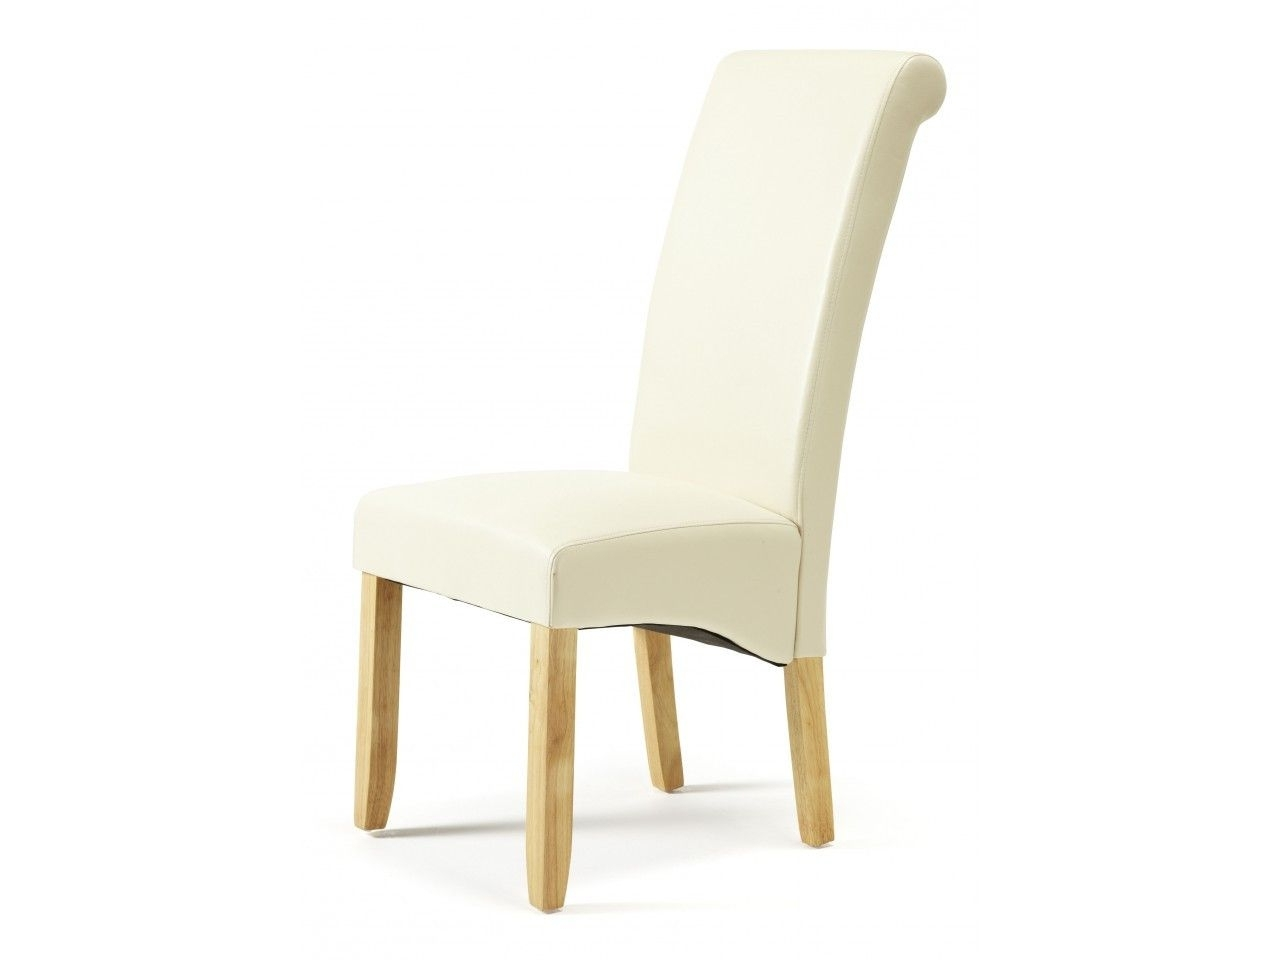 2018 Cream Leather Dining Chair – Modern Classic Furniture Check With Best And Newest Cream Leather Dining Chairs (Gallery 1 of 25)